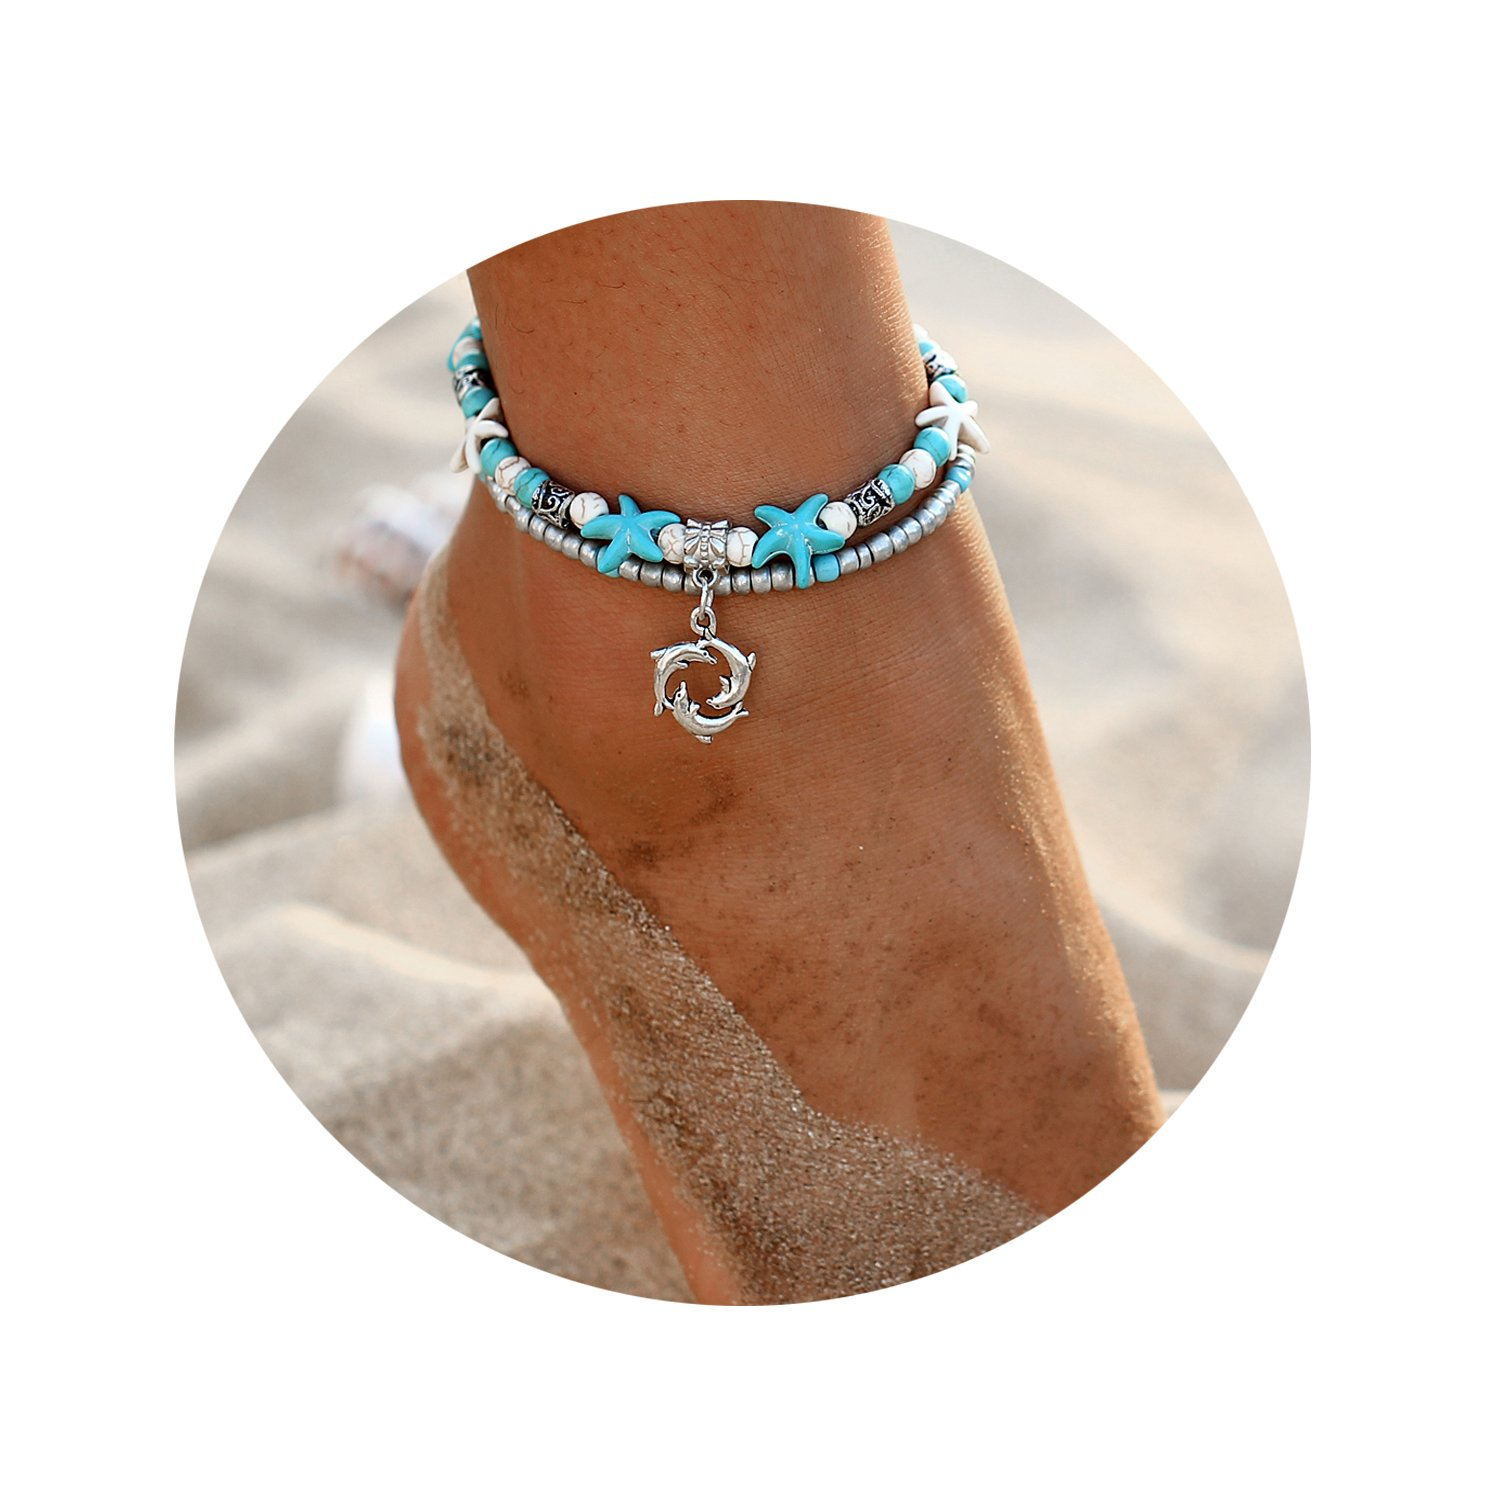 FINETOO 17mile Dolphin Blue Boho Starfish Beach Bracelet Anklet Beaded Anklet Shell Multi-Layer Anklets Jewelry Gifts for Girls